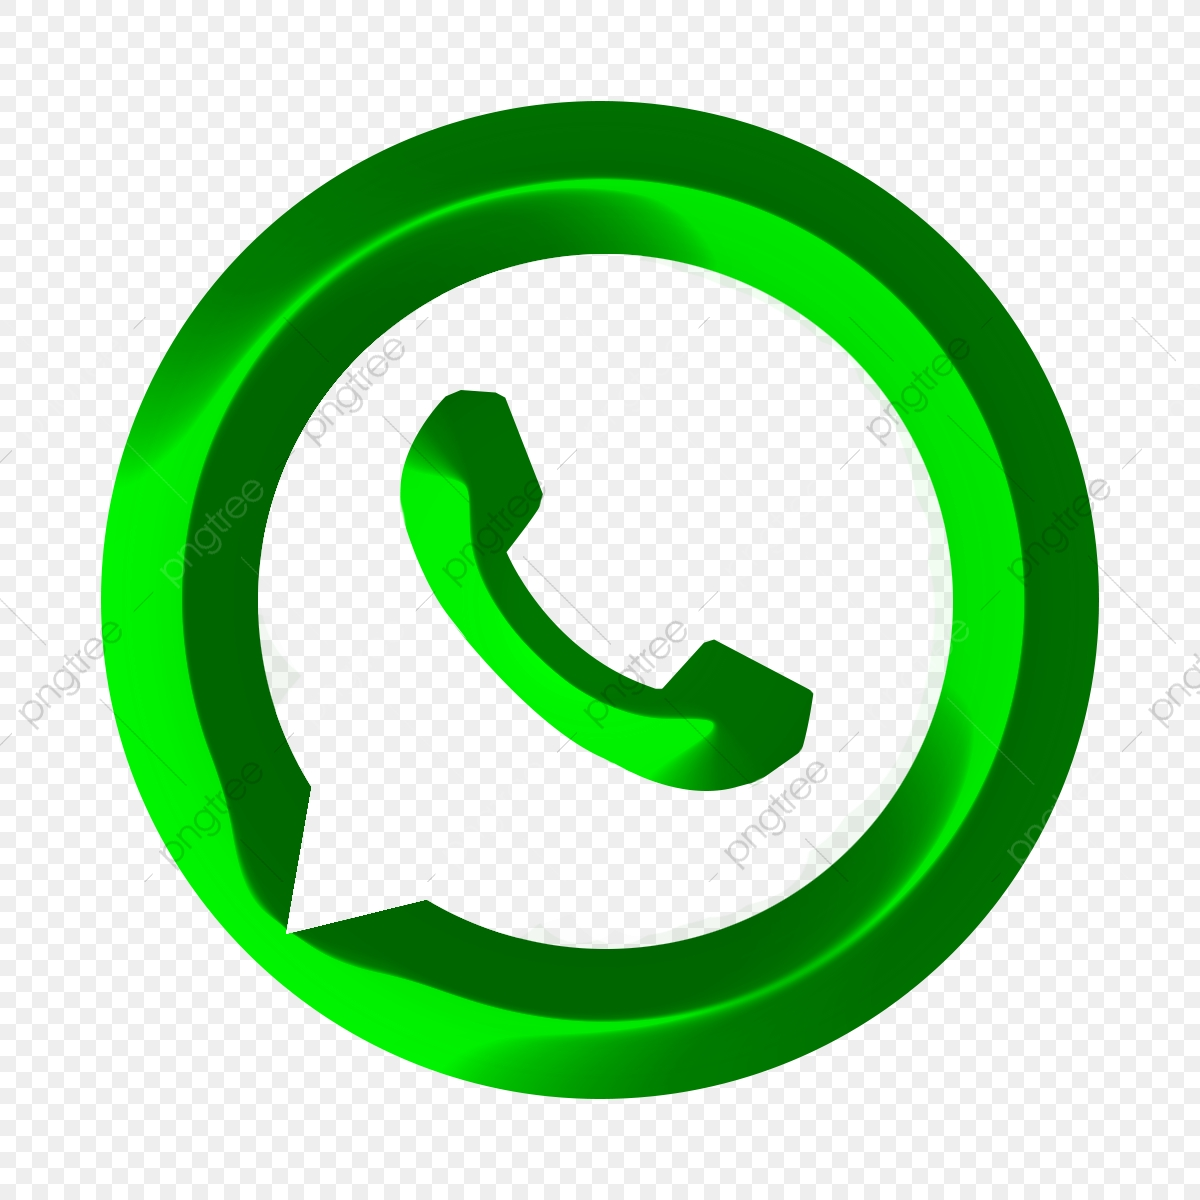 Whatsapp Icon Logo, Whatsapp Icon, Whatsapp Logo, Whatsapp